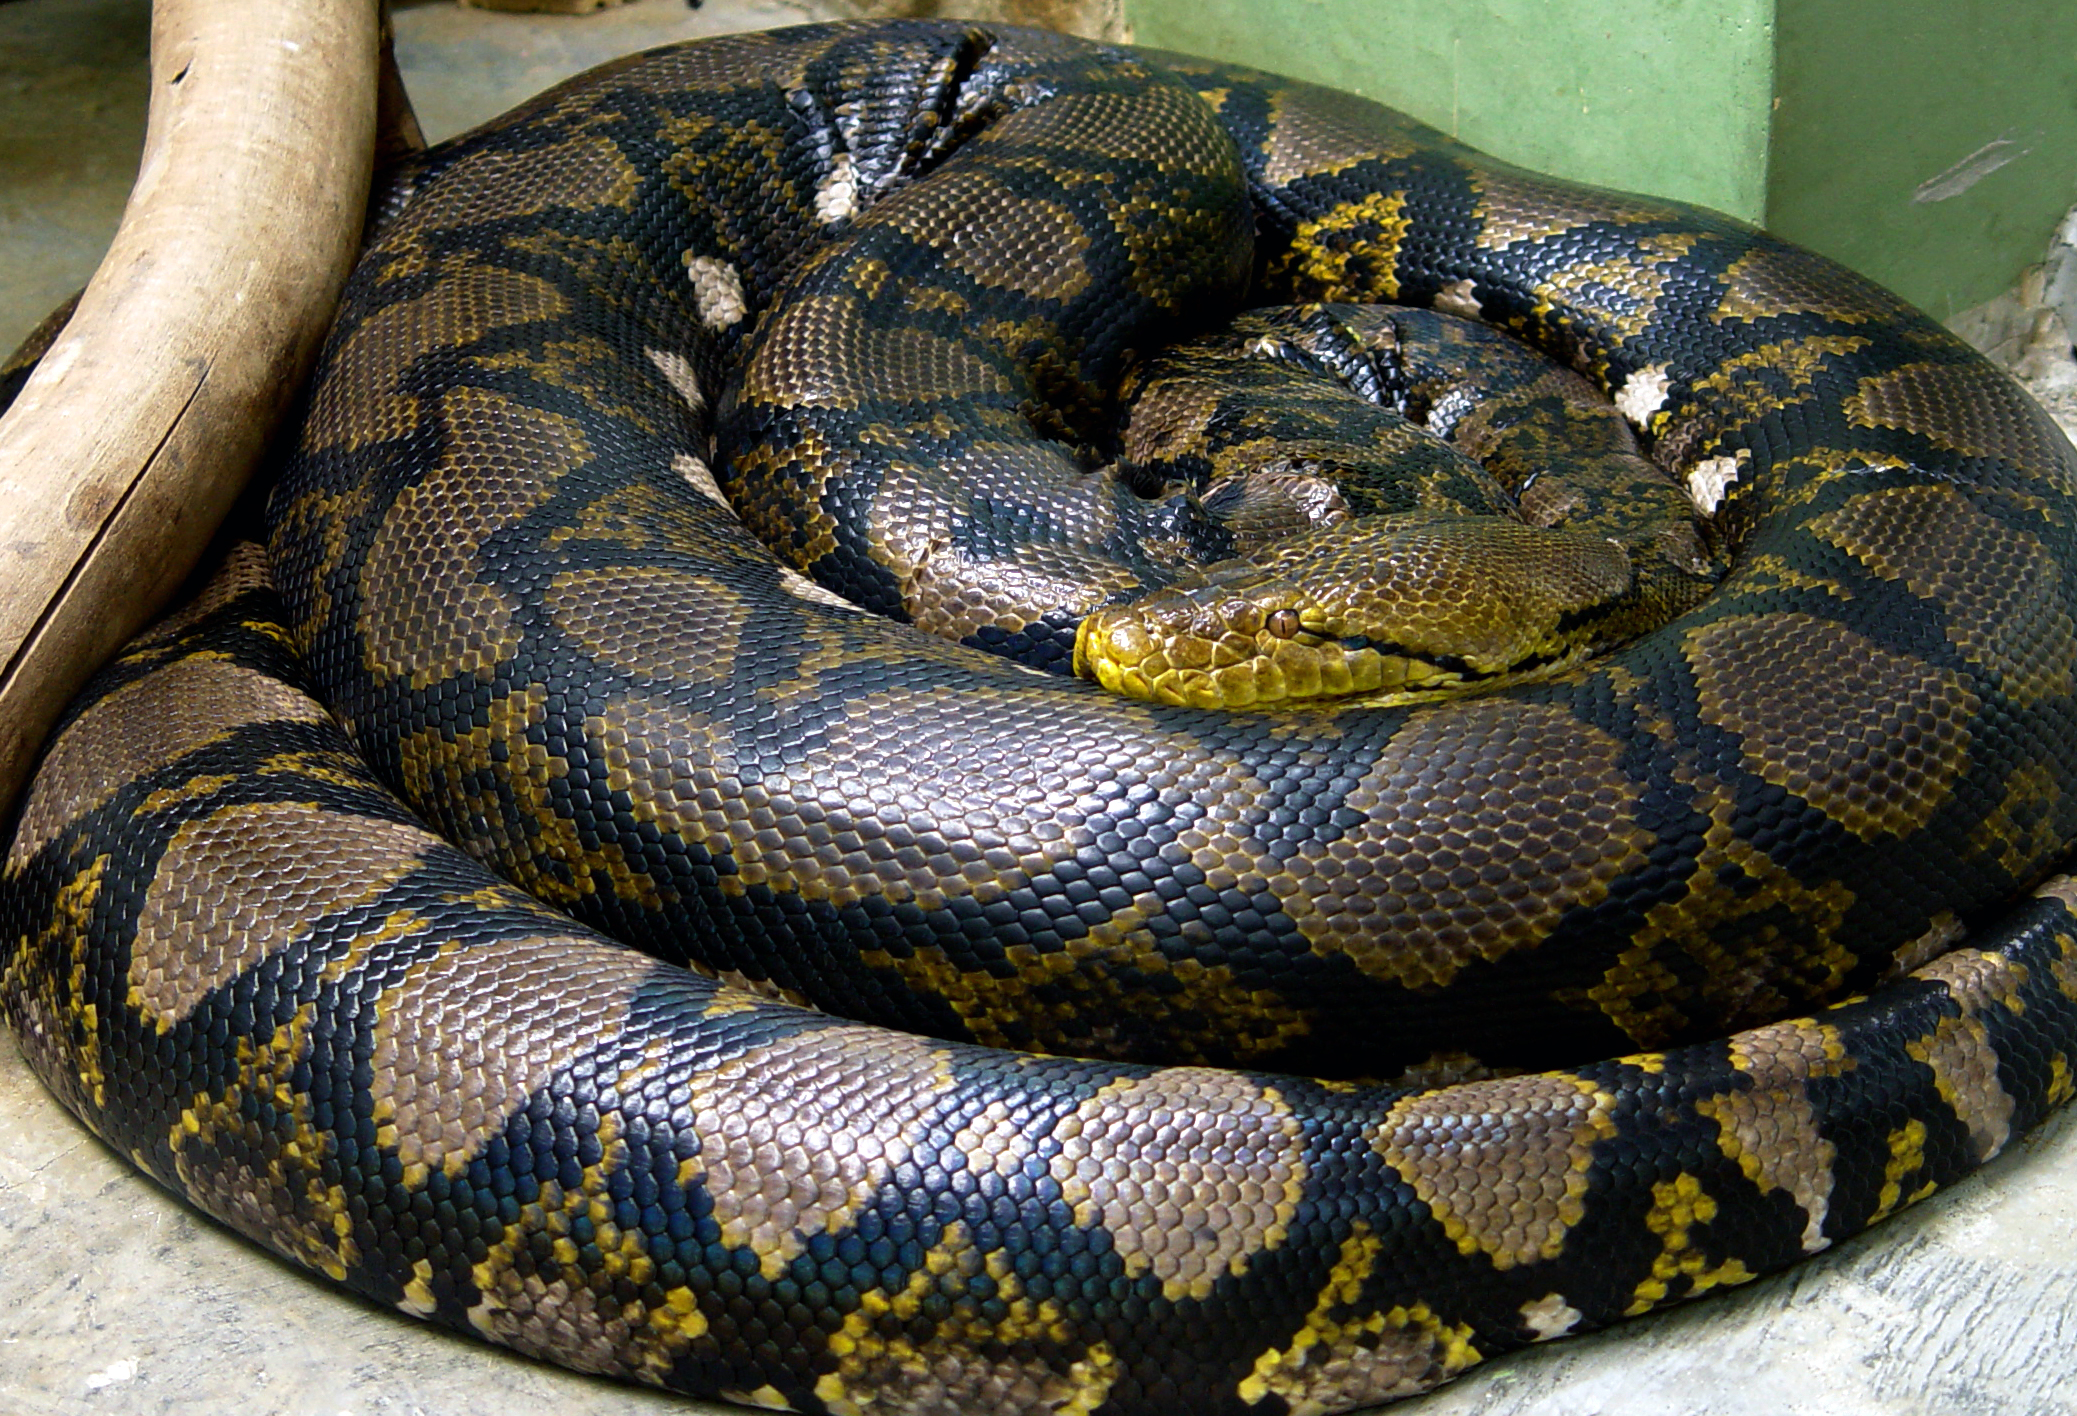 Reticulated Python Wikipedia